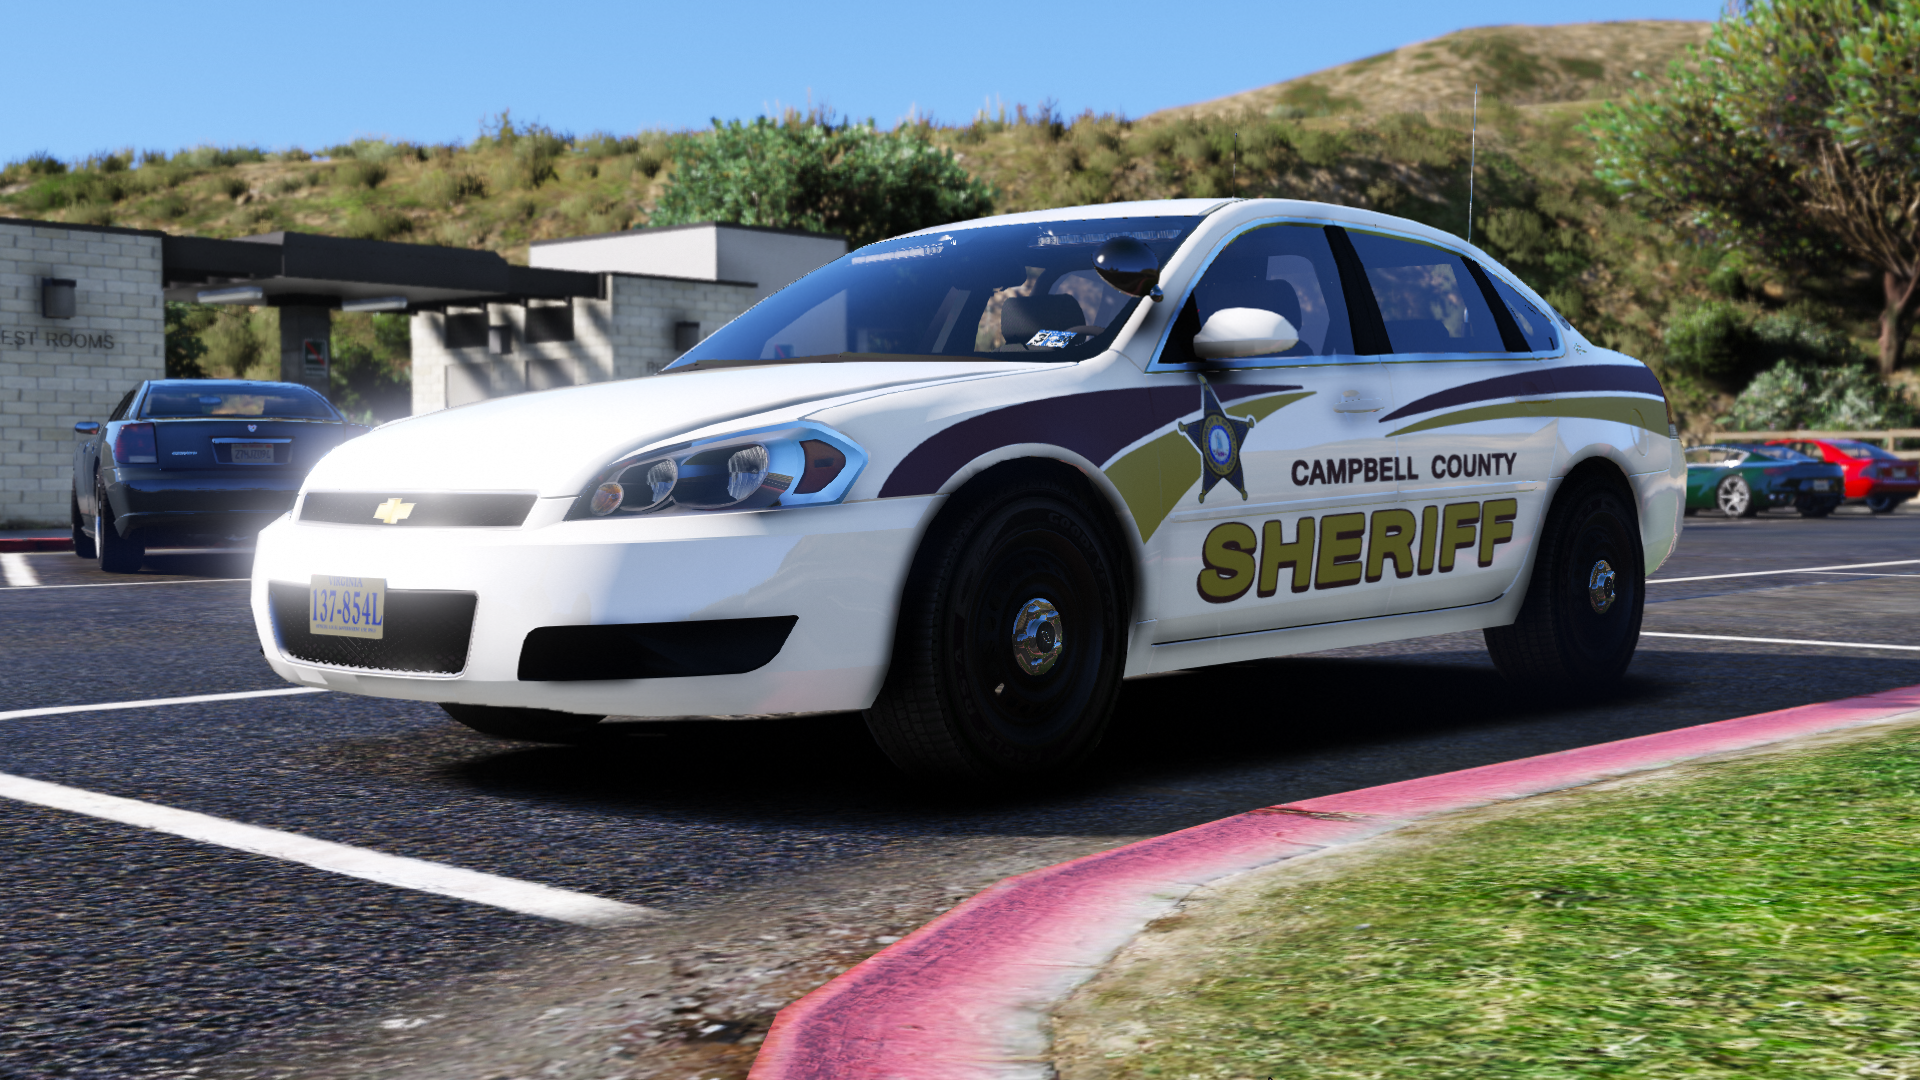 2008 Chevy Impala 9C1- Campbell County Sheriff's Office